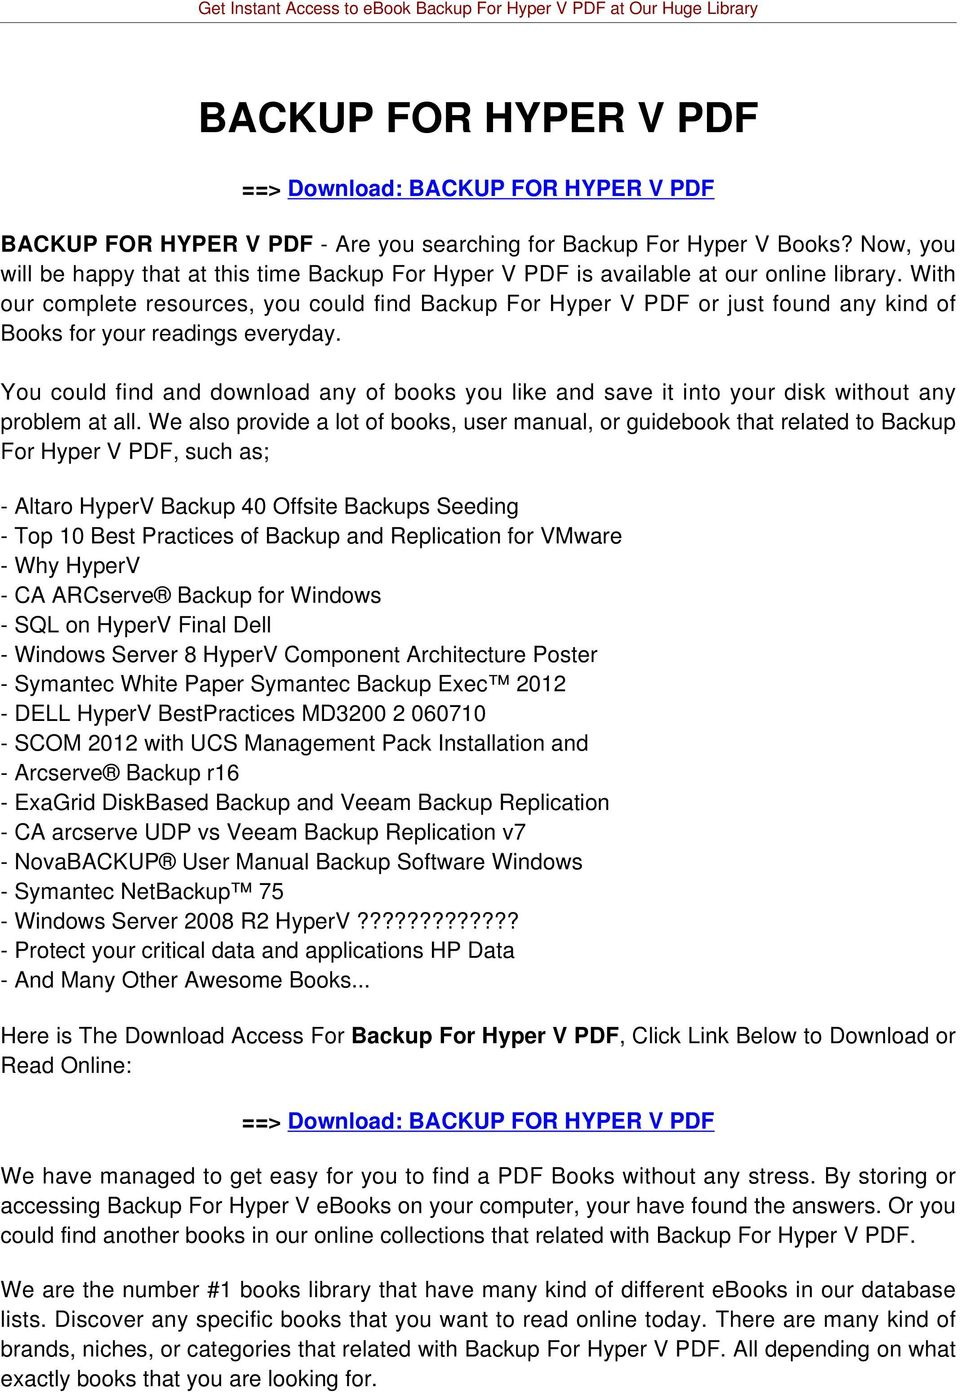 With our complete resources, you could find Backup For Hyper V PDF or just found any kind of Books for your readings everyday.